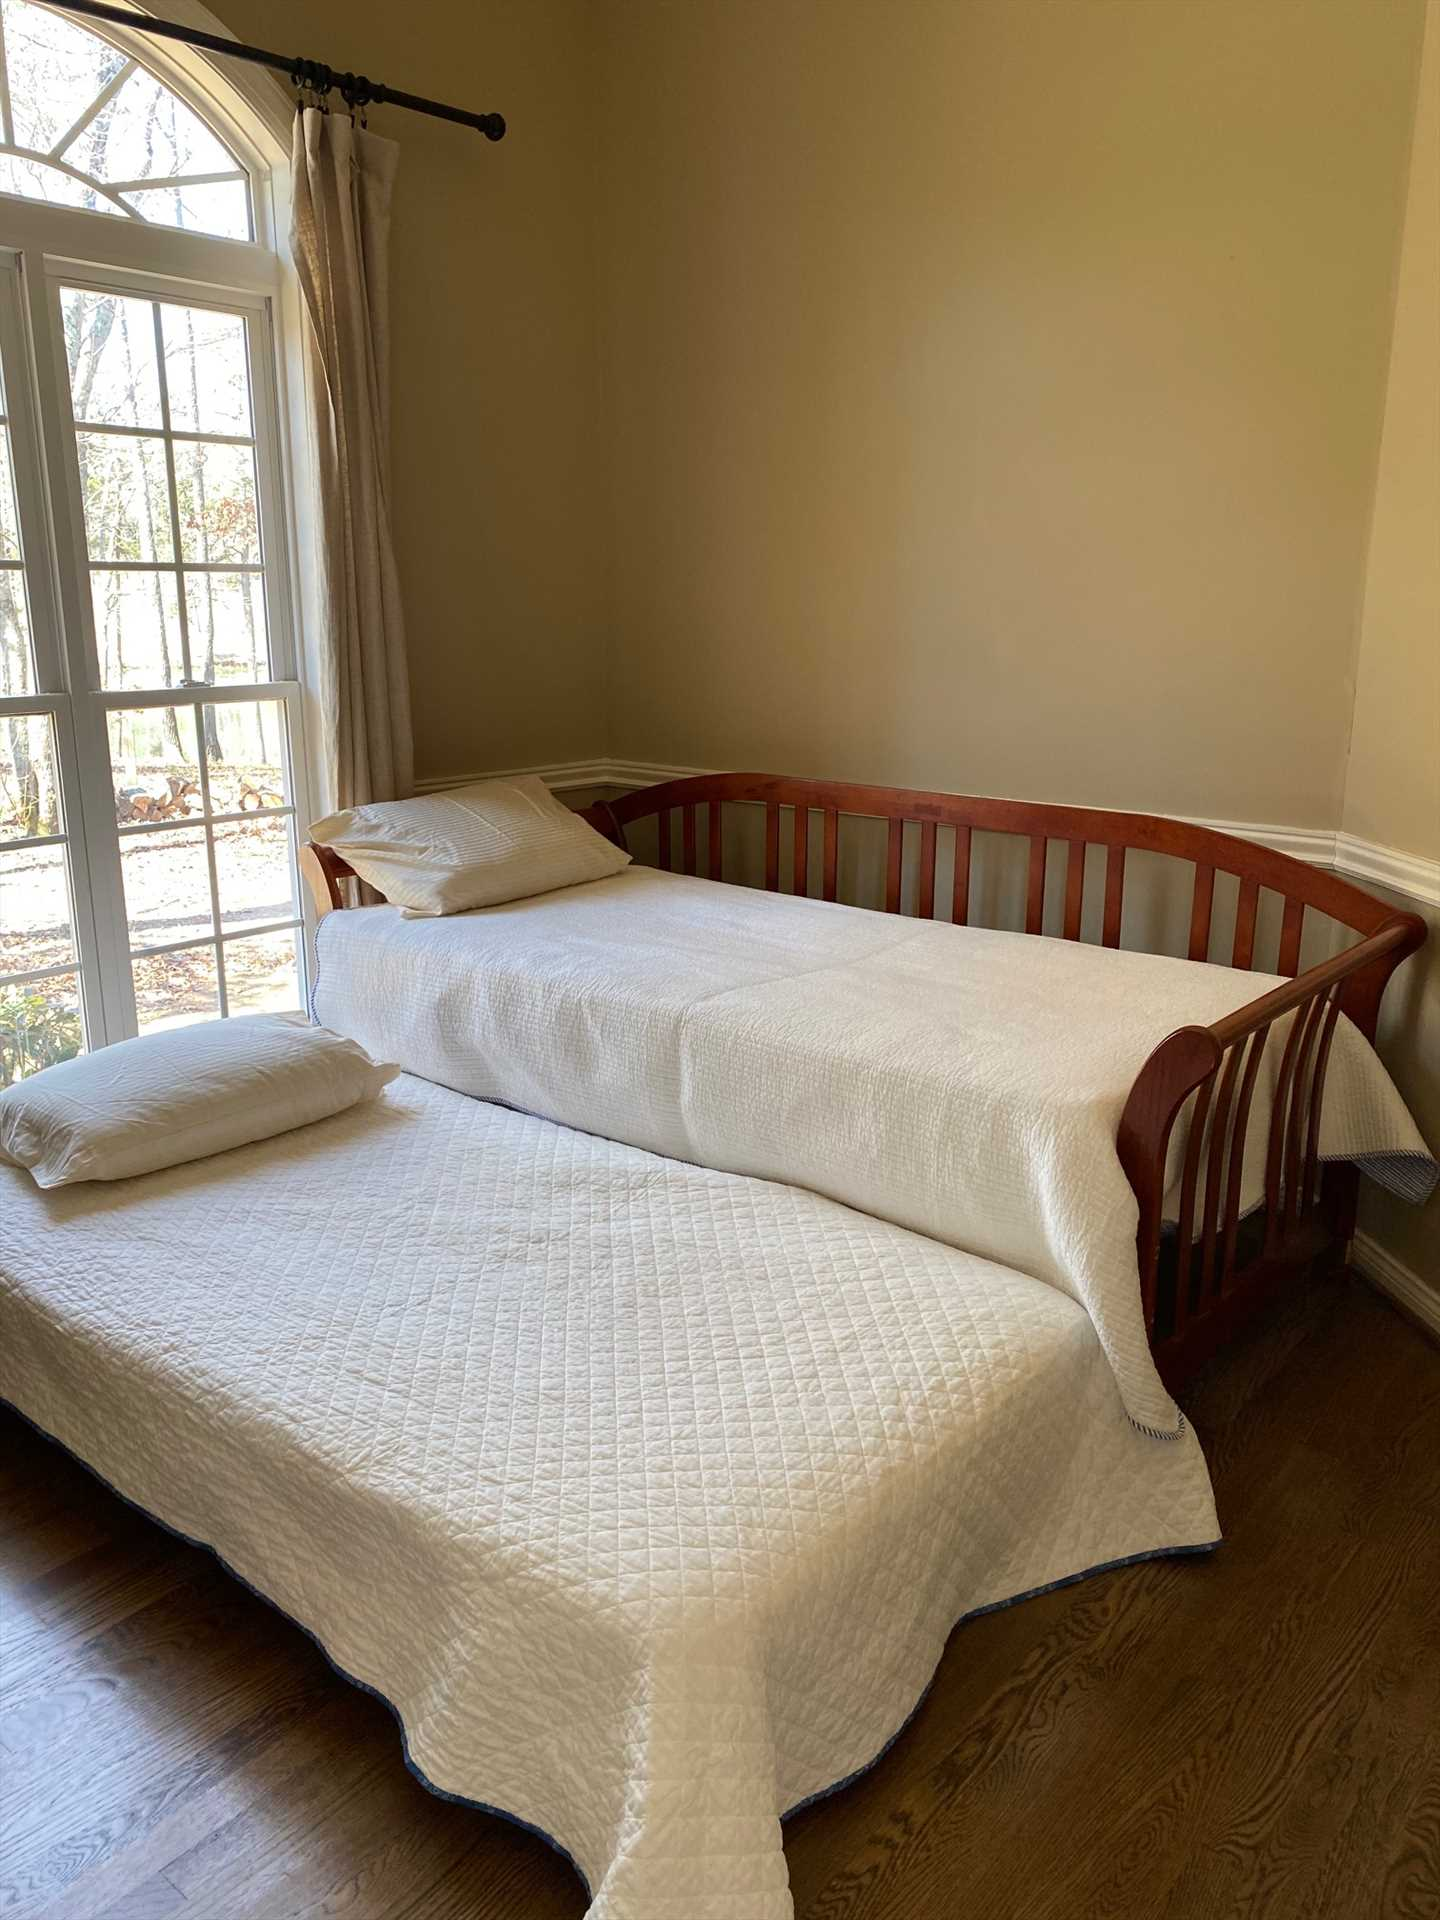 Additional sleeping- daybed and trundle